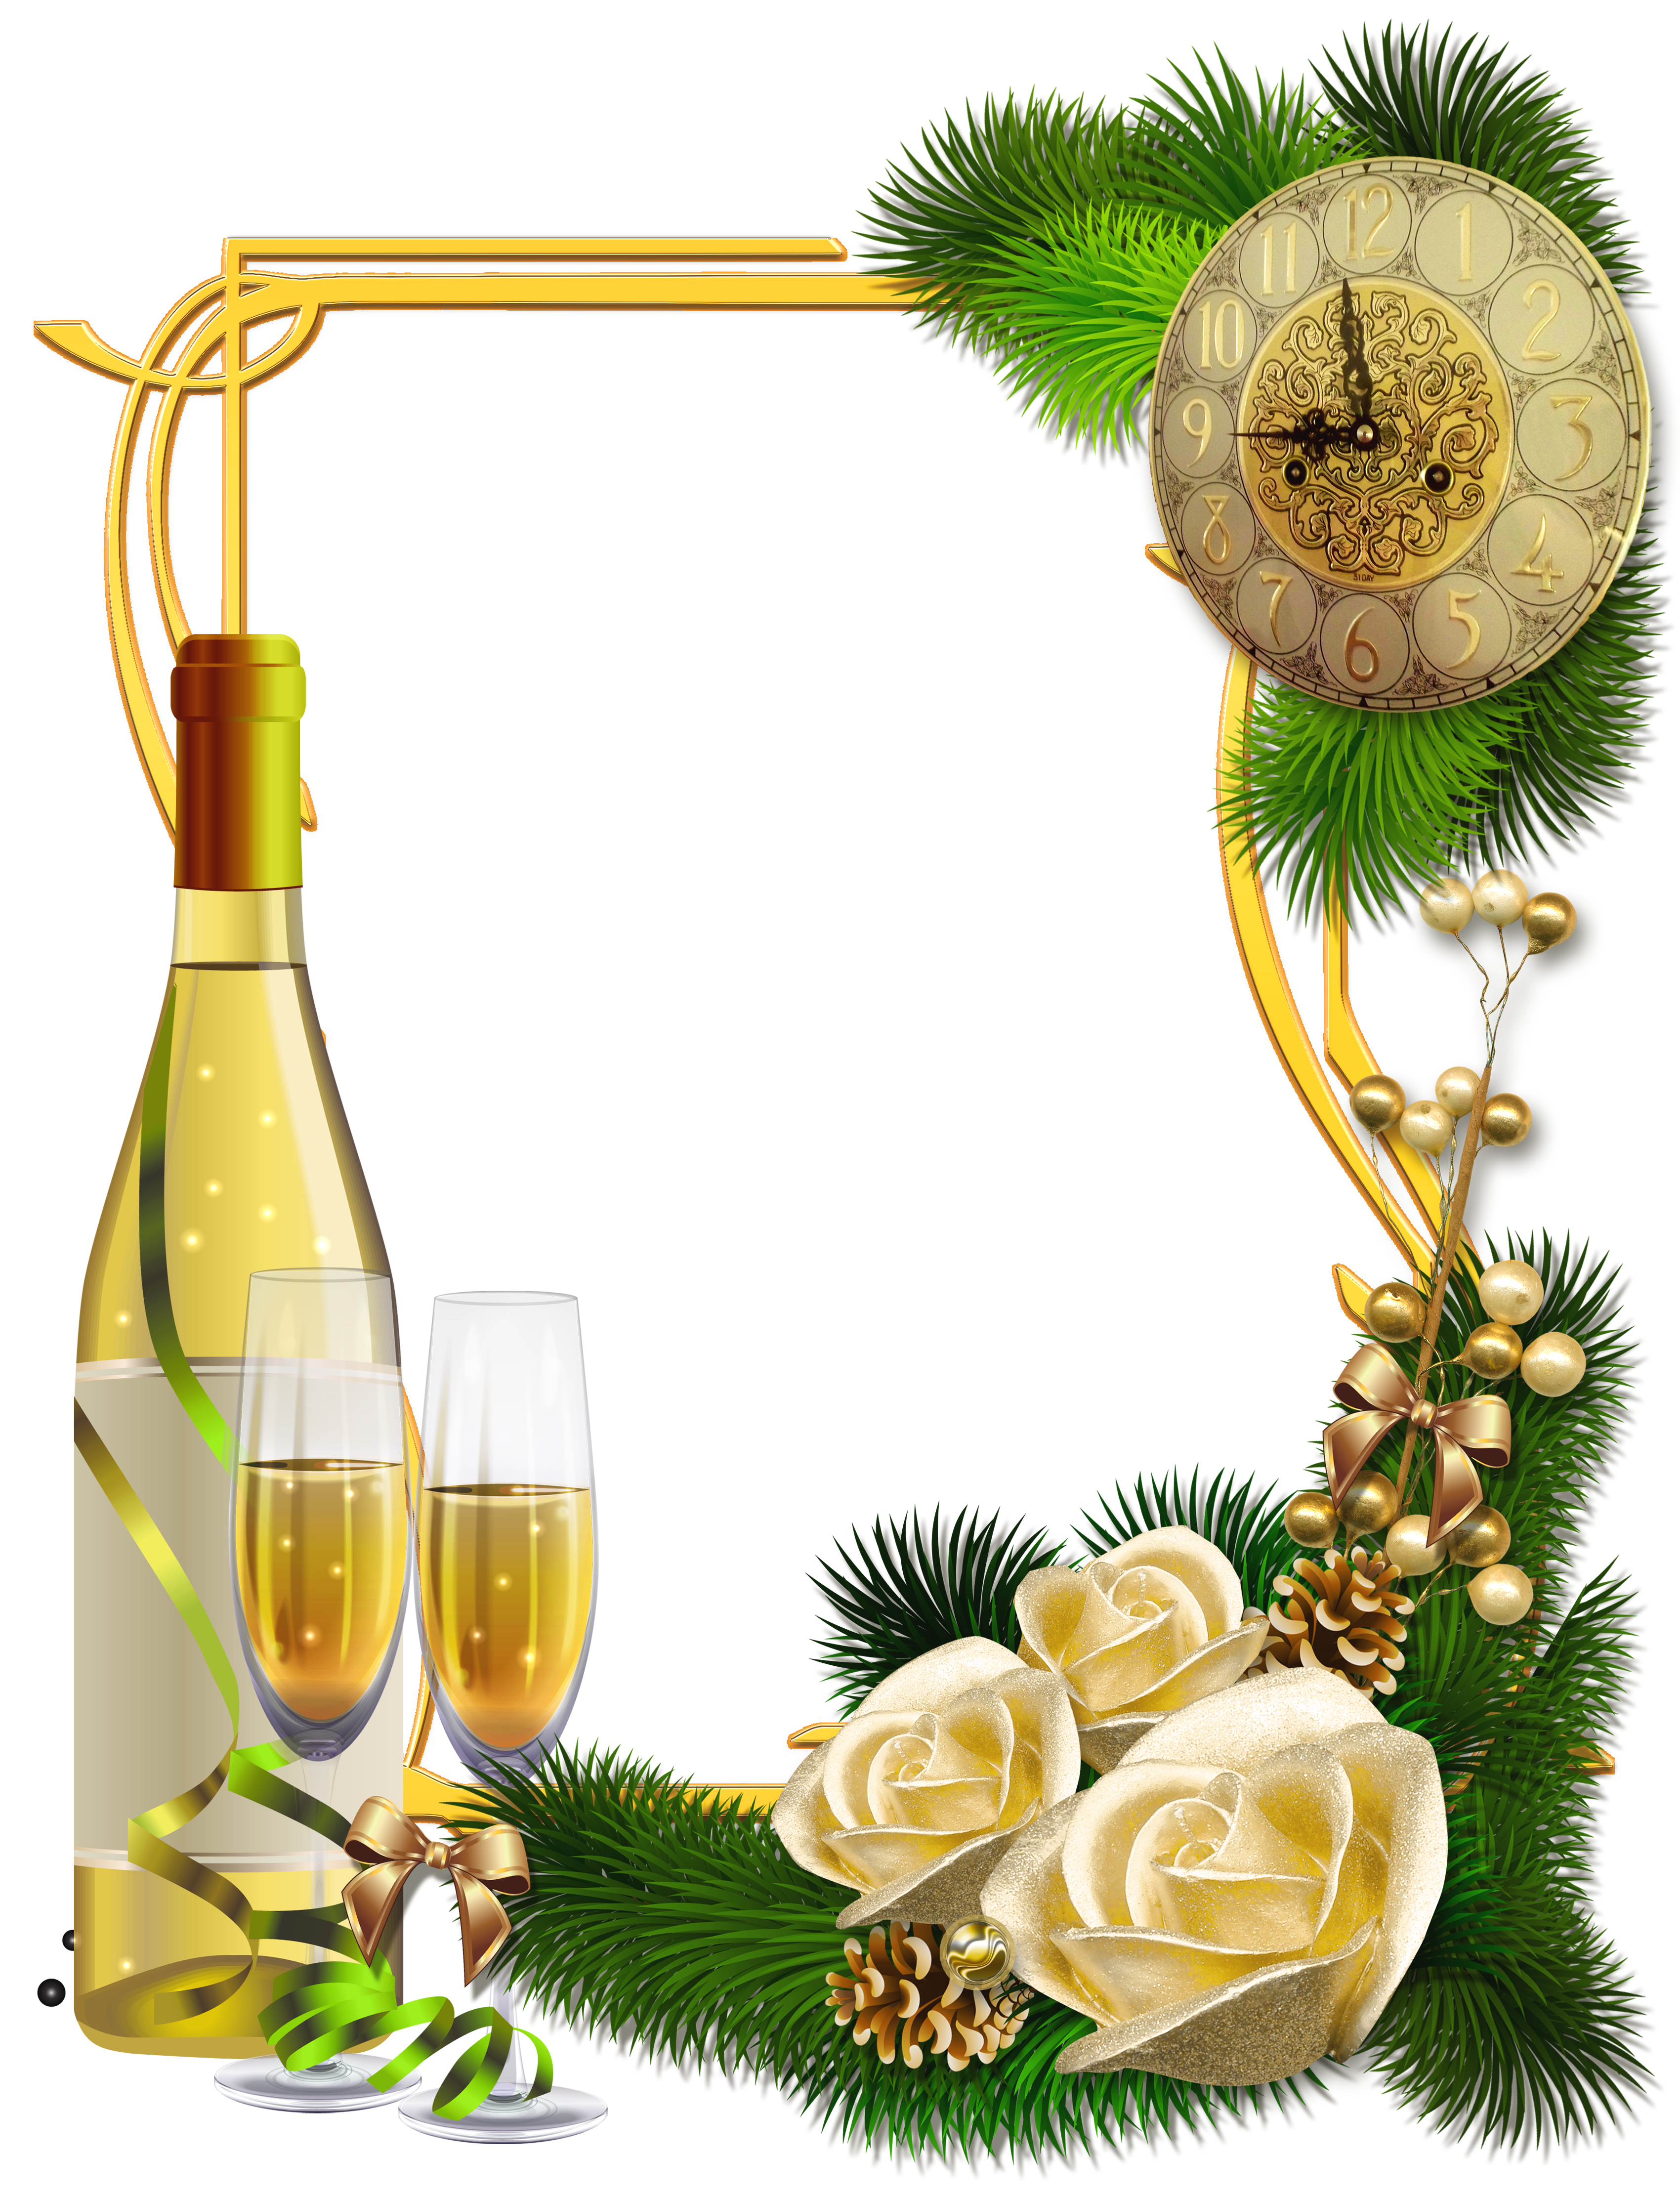 New Year PNG Photo Frame with Champagne.